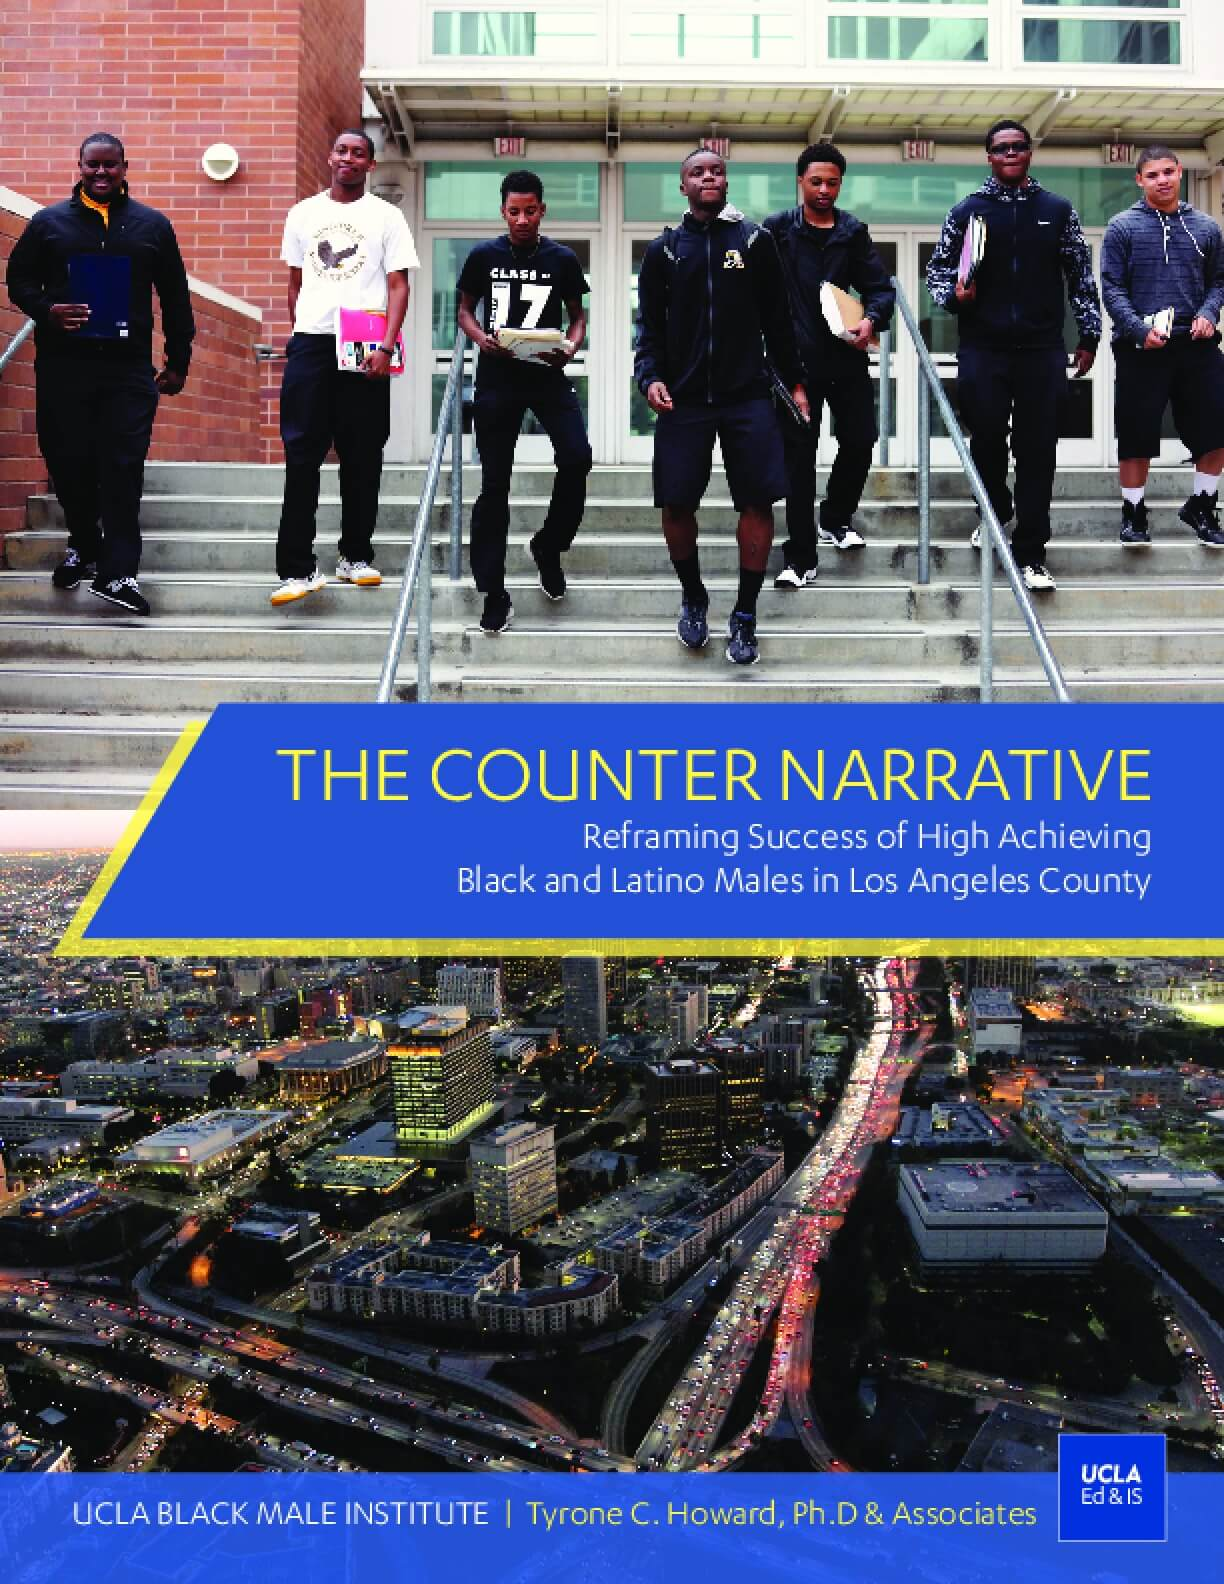 The Counter Narrative: Reframing Success of High Achieving Black and Latino Males in Los Angeles County